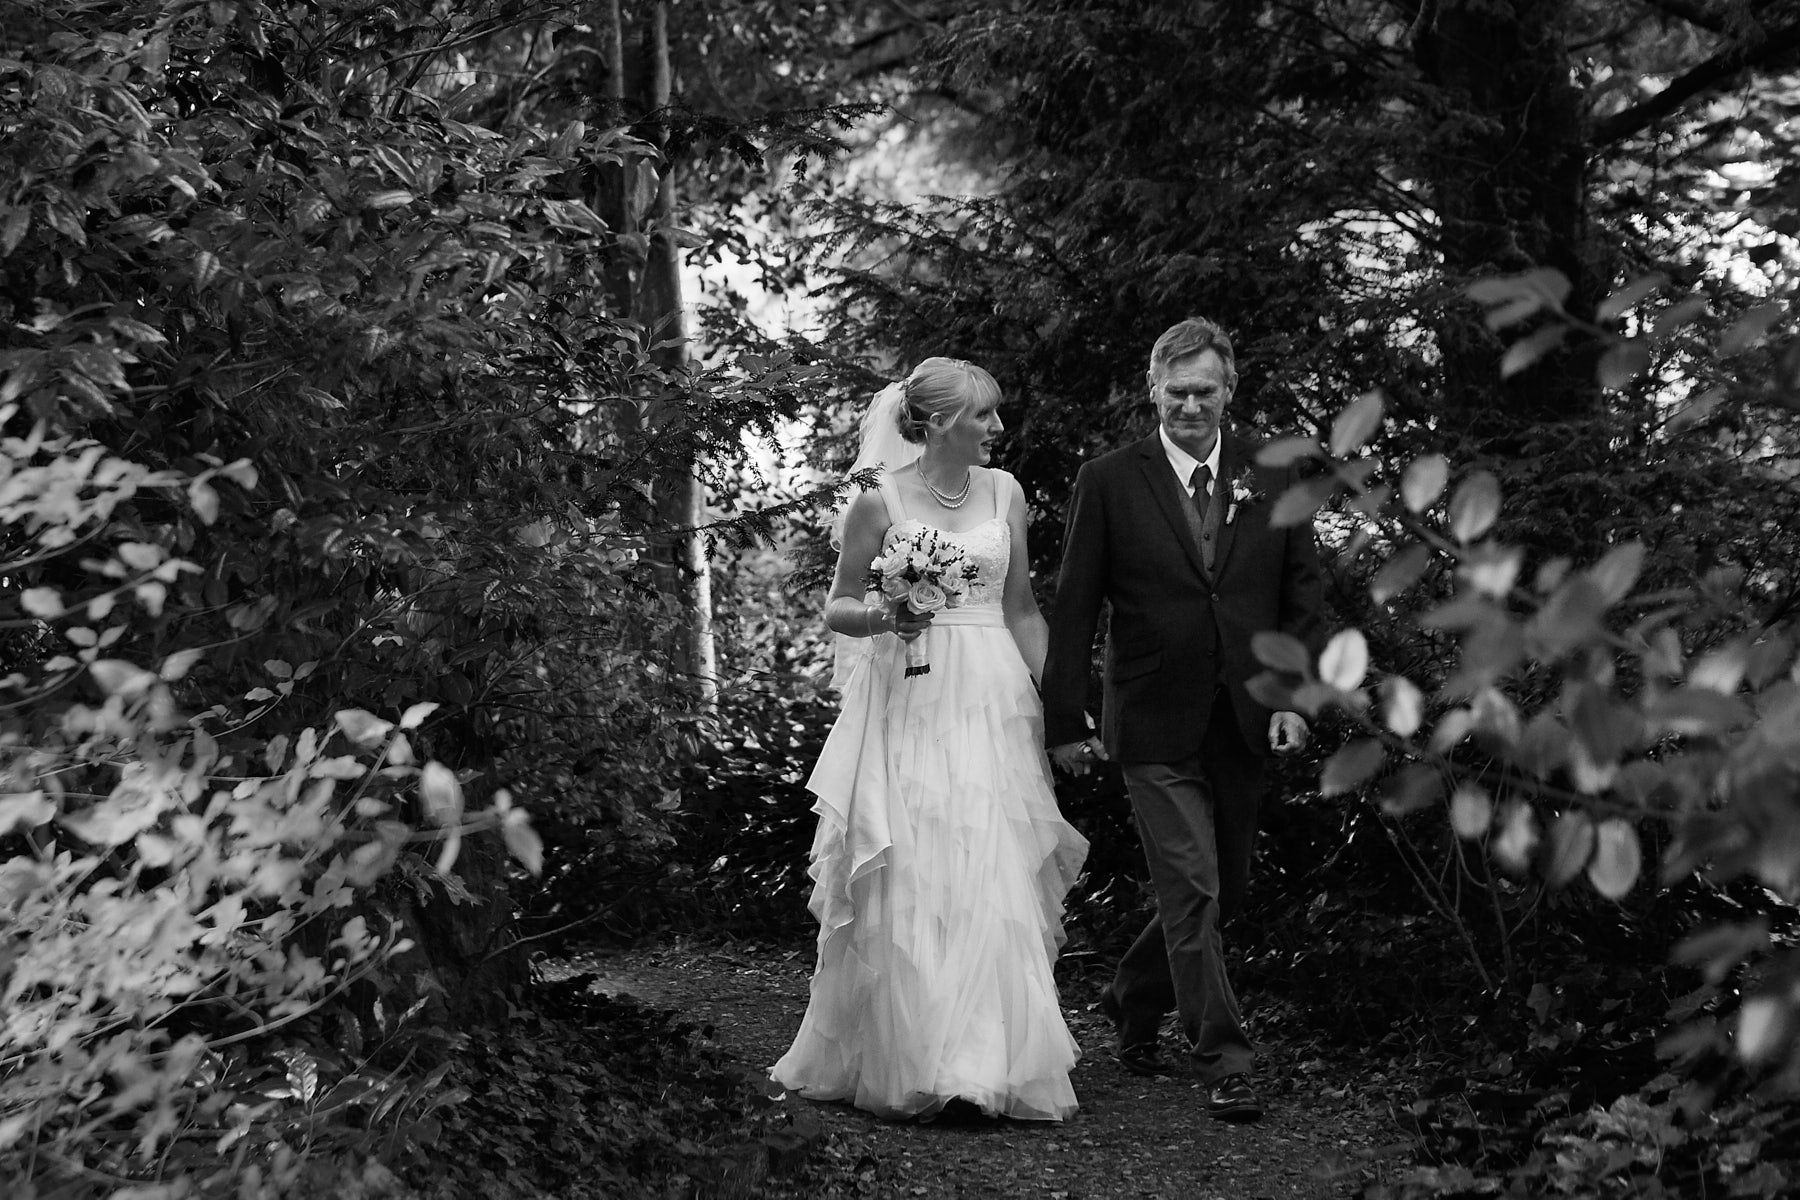 A father walks his daughter to the church at National Trust Wedding Venu Gunby Hall